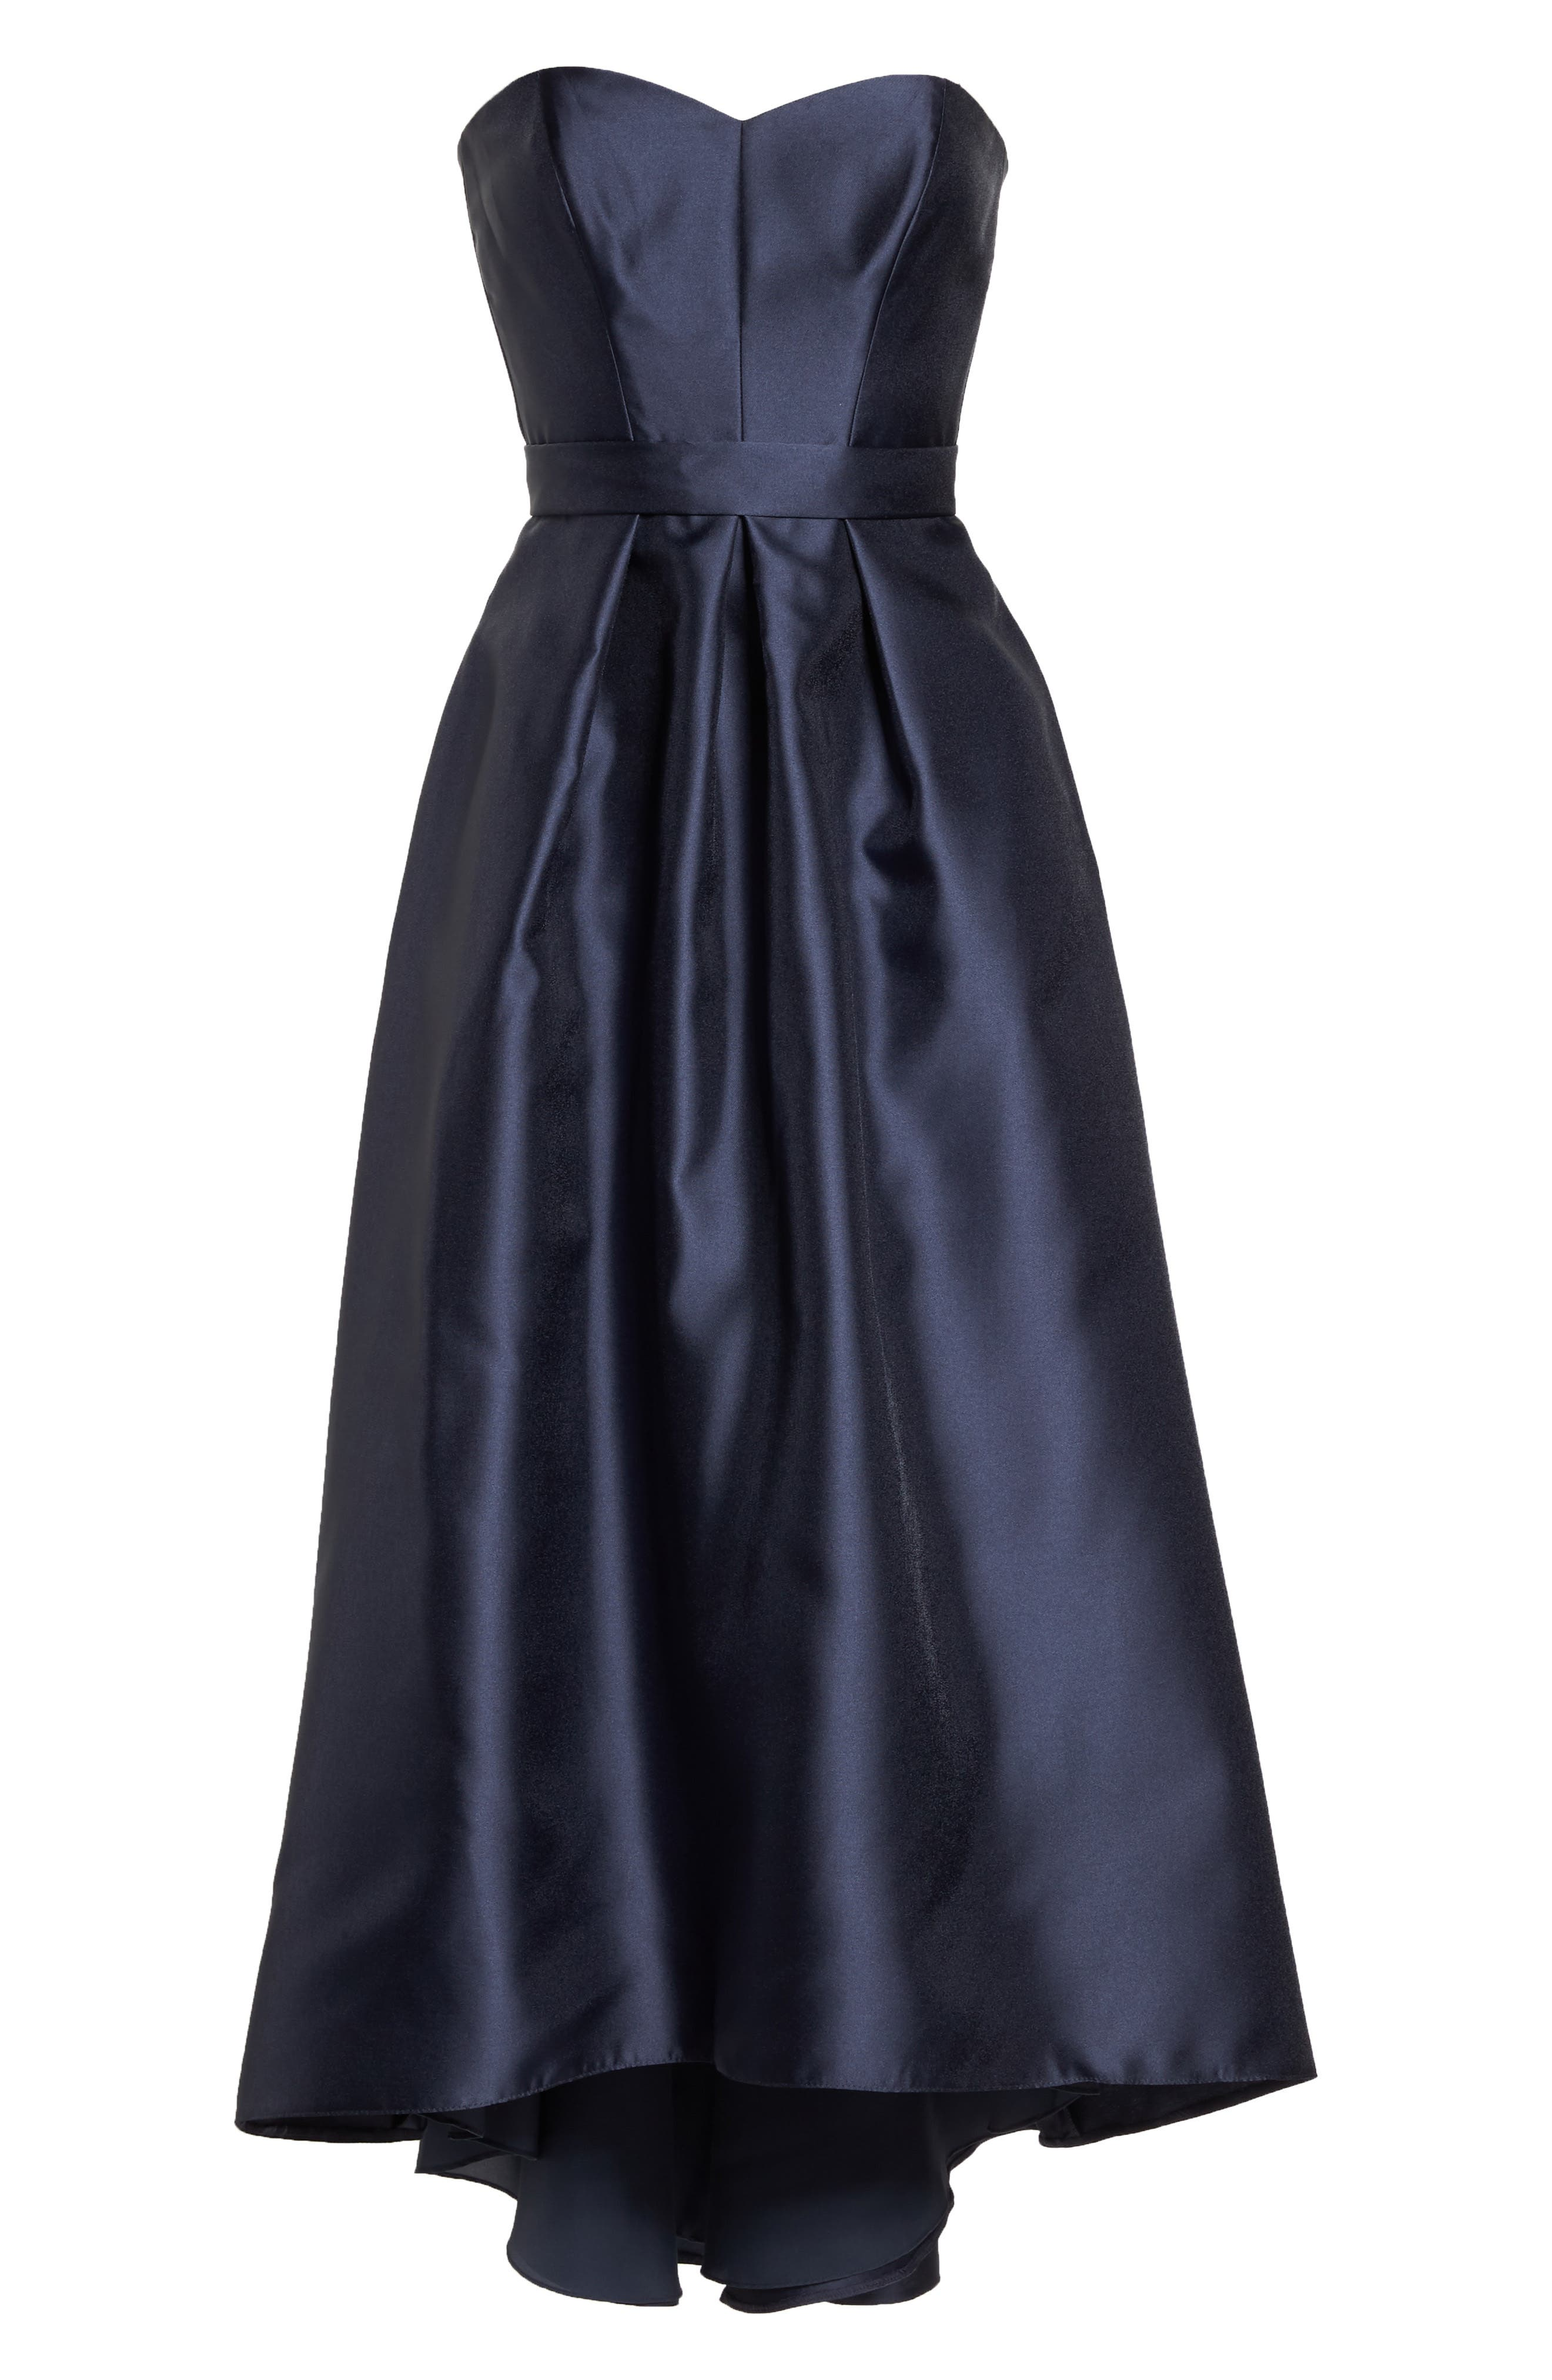 ALFRED SUNG, Strapless High/Low Satin Twill Ballgown, Alternate thumbnail 5, color, ONYX